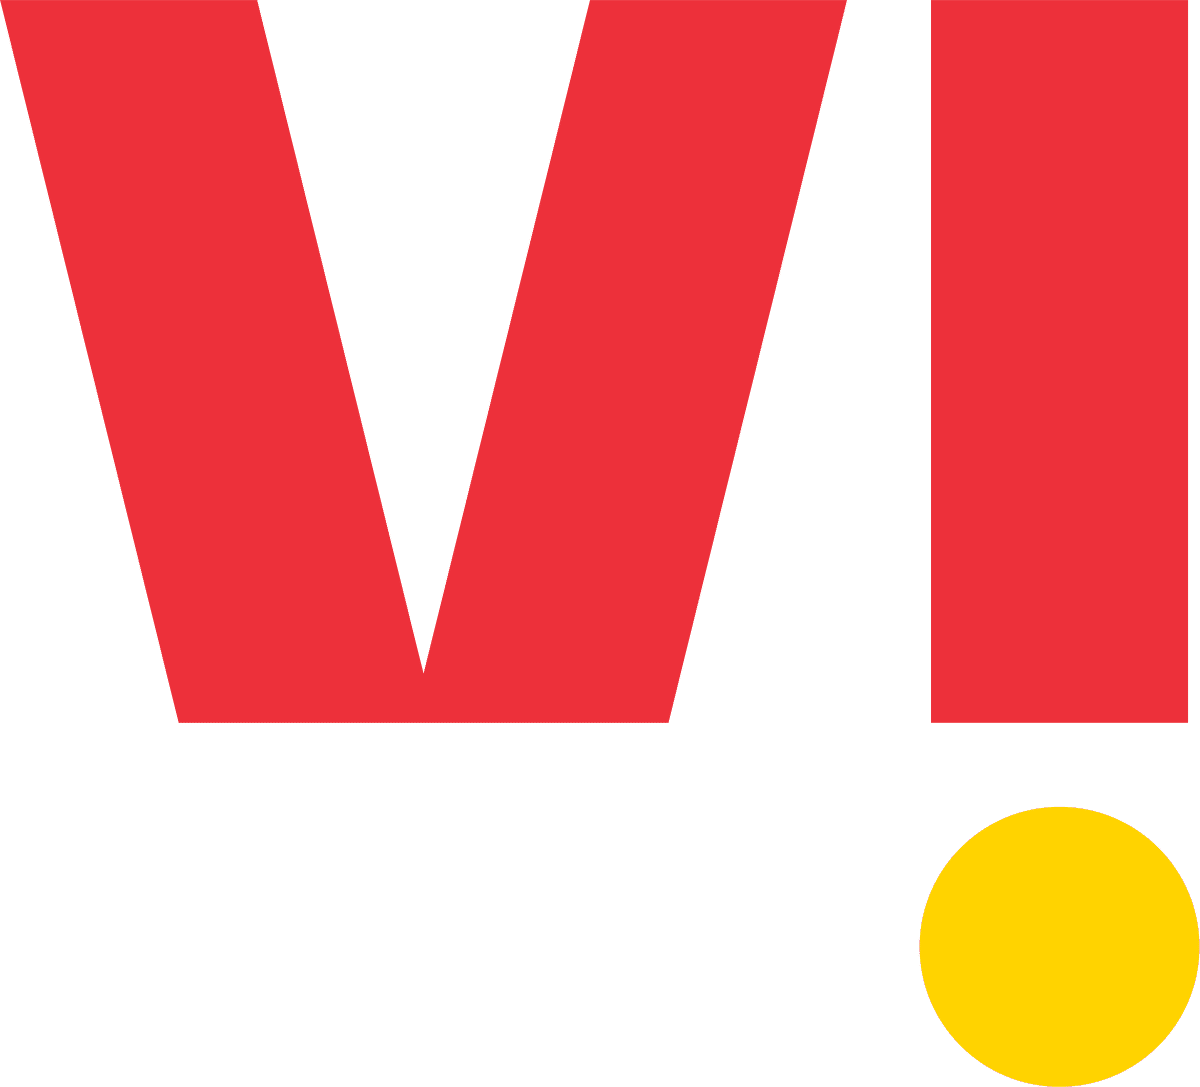 Vodafone India recently rebranded to Vi with new logo